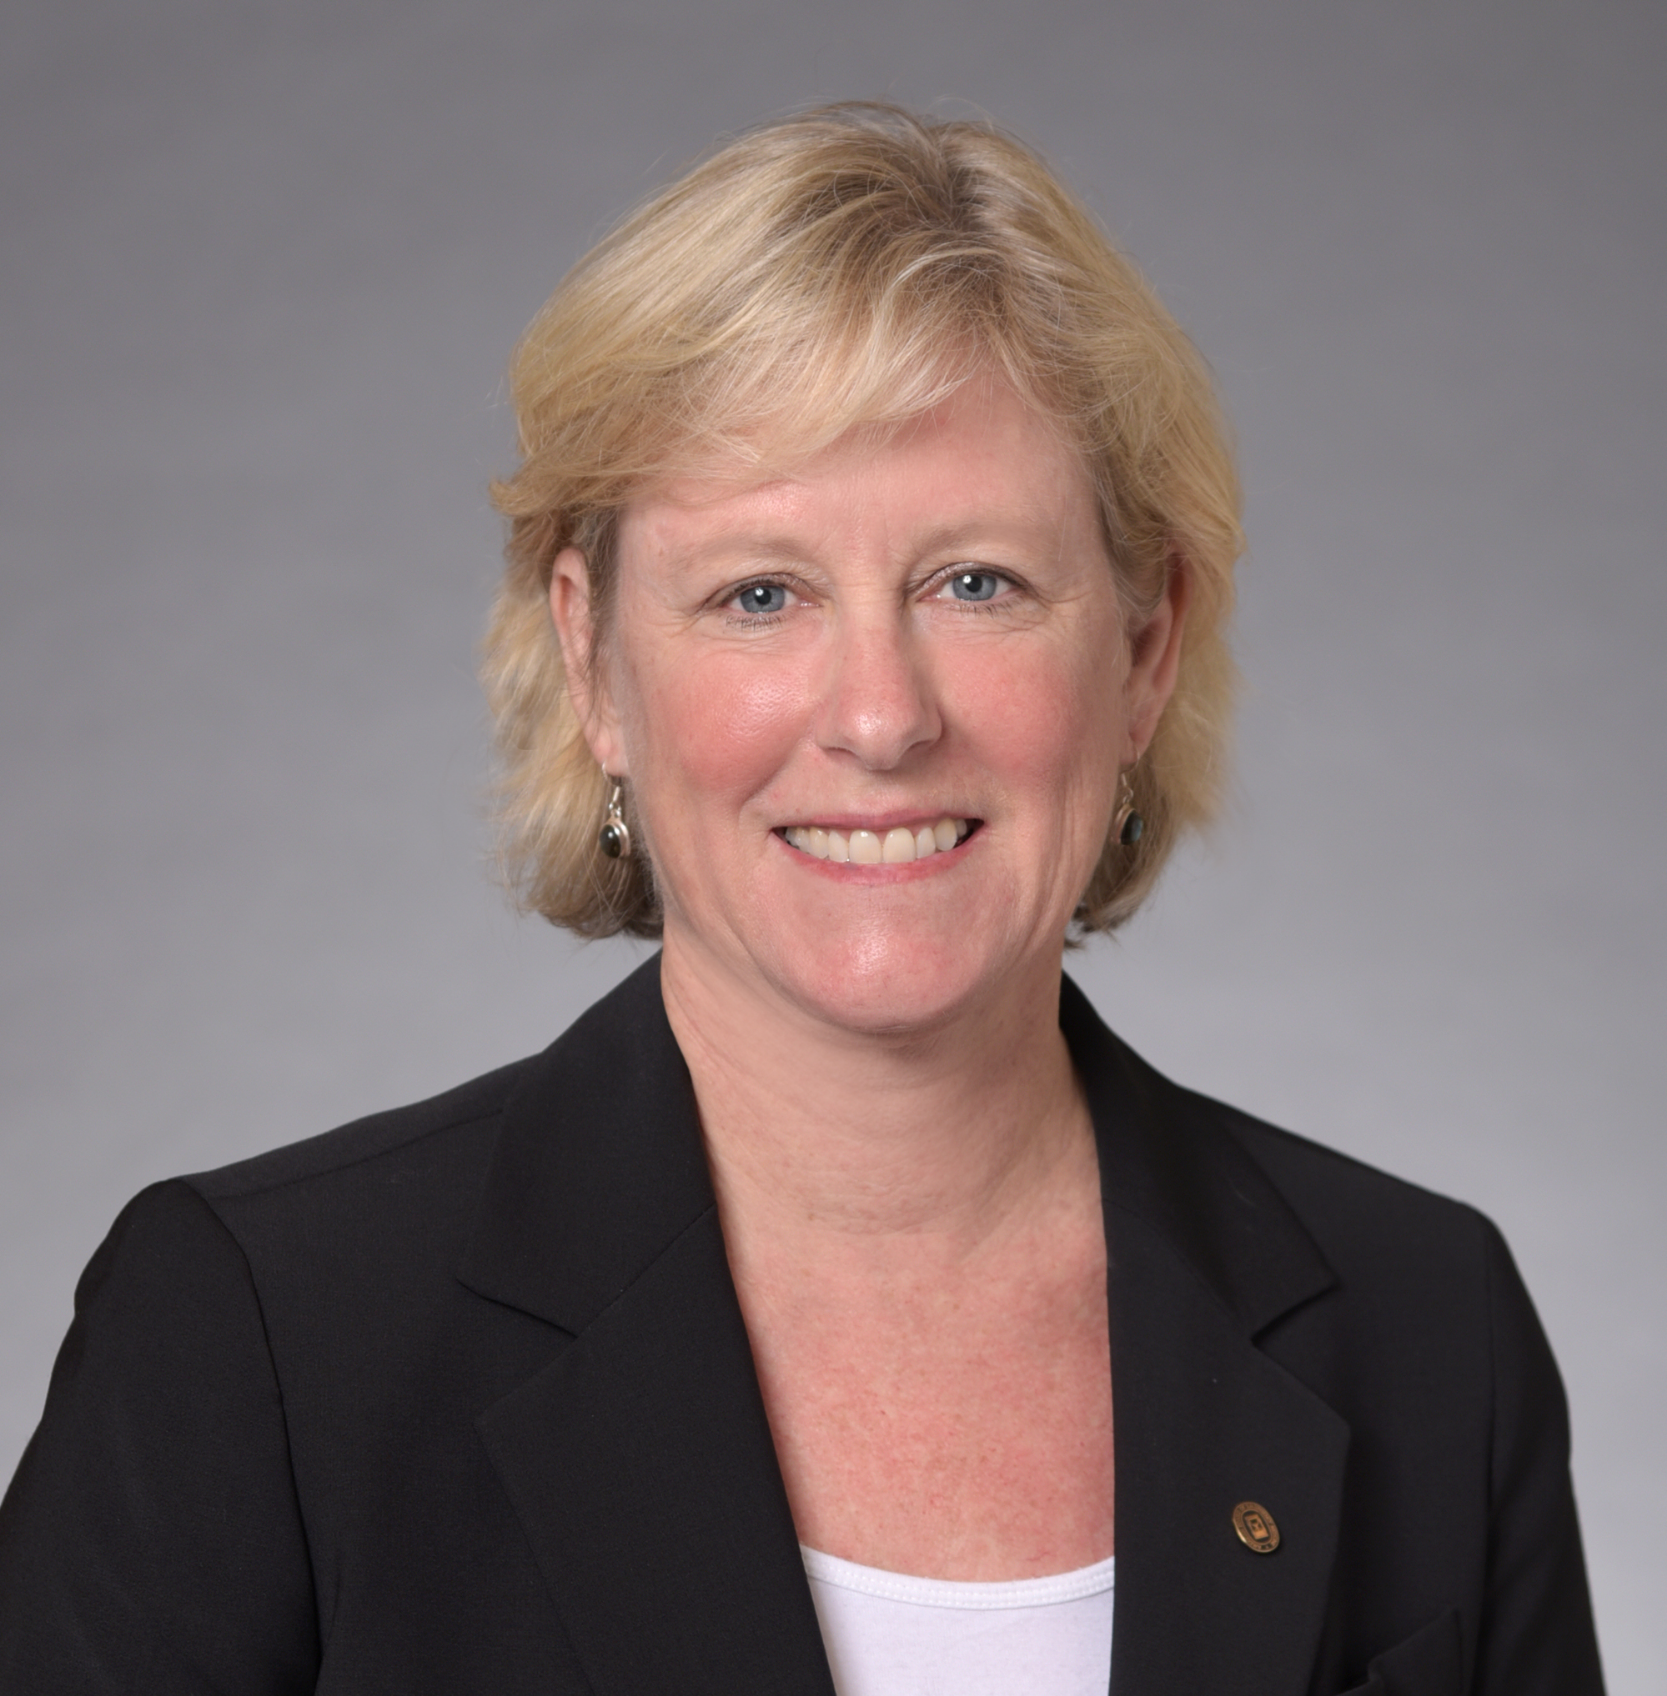 Marianne Gausche-Hill, MD, FACEP, FAAP   Medical Director, Los Angeles County EMS Agency  Professor of Clinical Medicine and Pediatrics, David Geffen School of Medicine at UCLA  EMS Fellowship Director, Harbor-UCLA Medical Center, Department of Emergency Medicine  Los Angeles, CA.